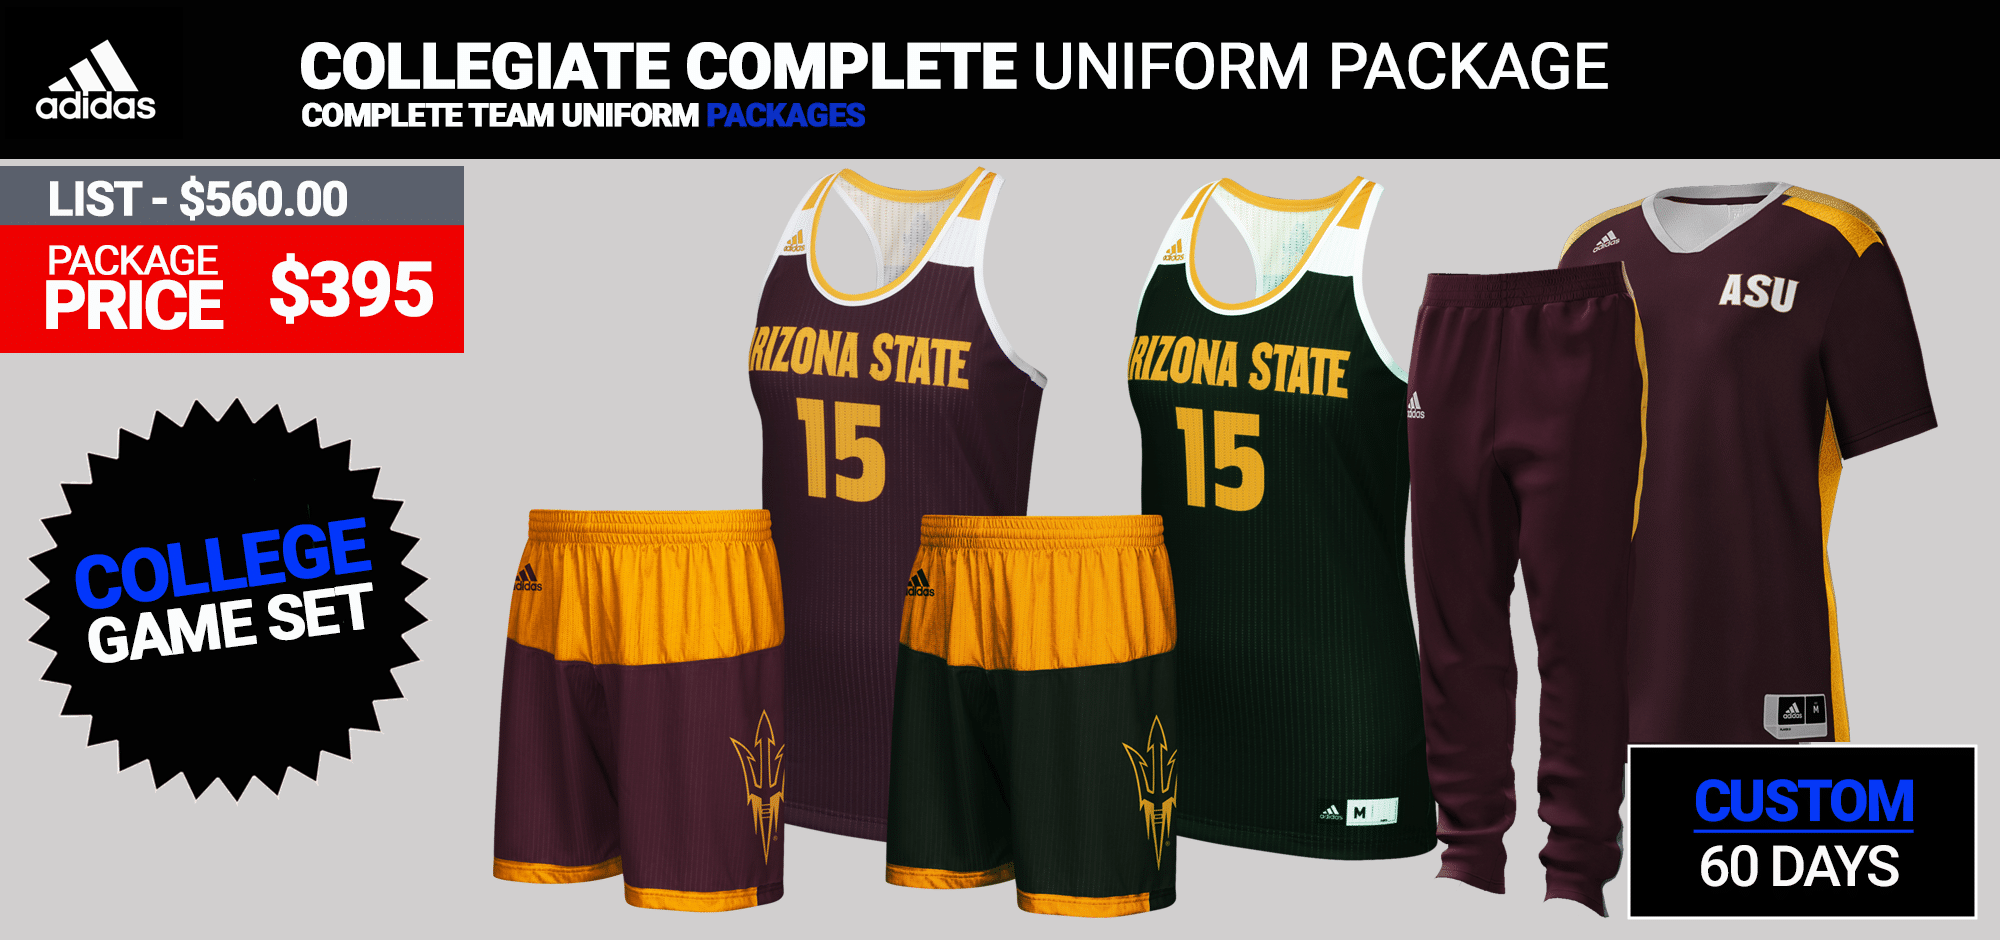 2eee6f309 Custom Complete Team Package (60 Days) Click for PDF  · Adidas Women s Game  Changer Basketball Uniform Package